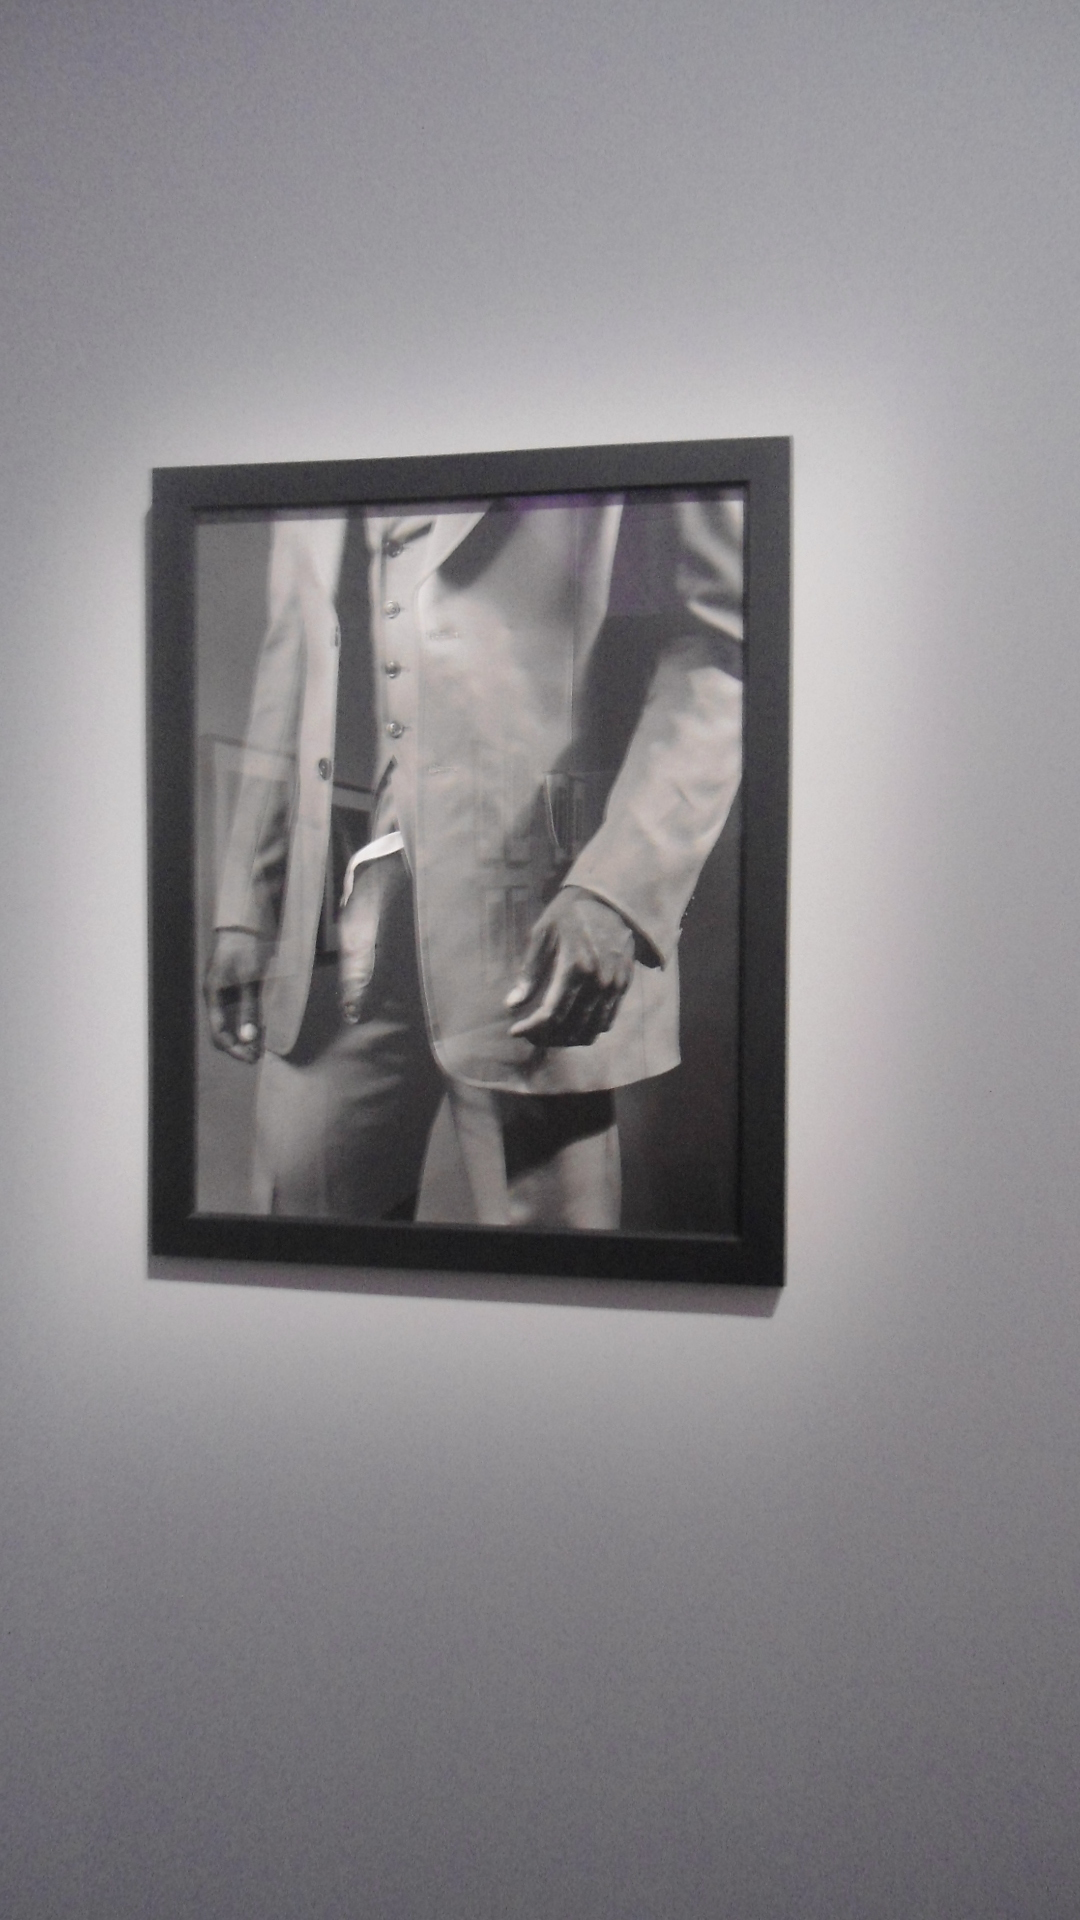 Robert Mapplethorpe. ©Tendance Sociale 2014